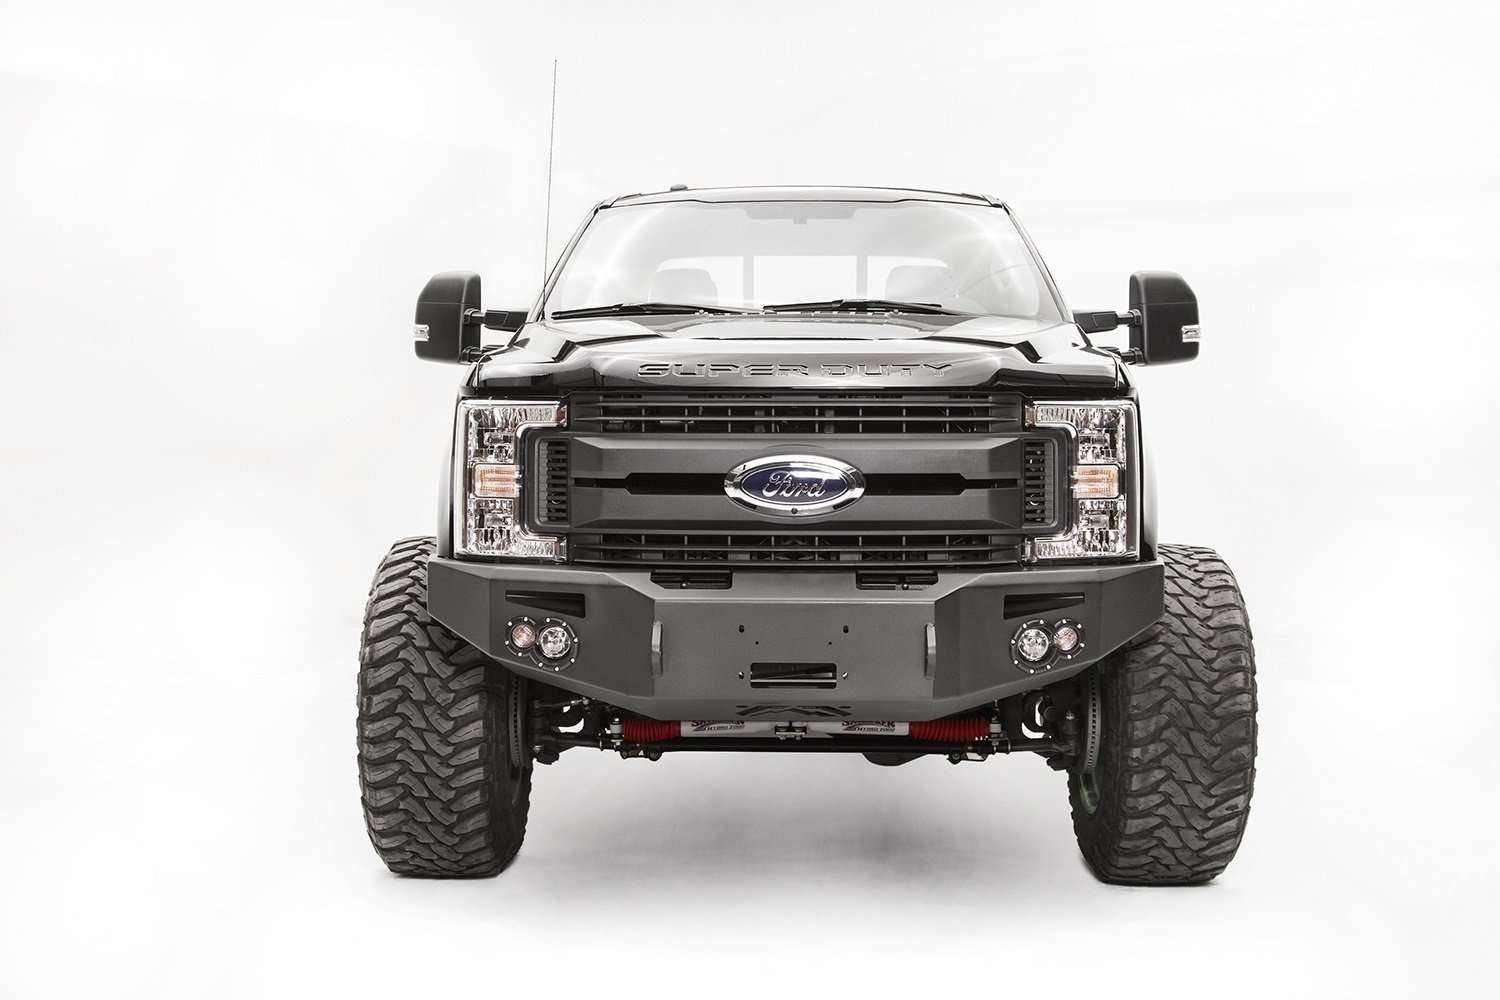 Fab Fours FS17-A4251-1 Ford F450/F550 Superduty 2017-2021 Premium Front Winch Bumper No Guard-BumperStock